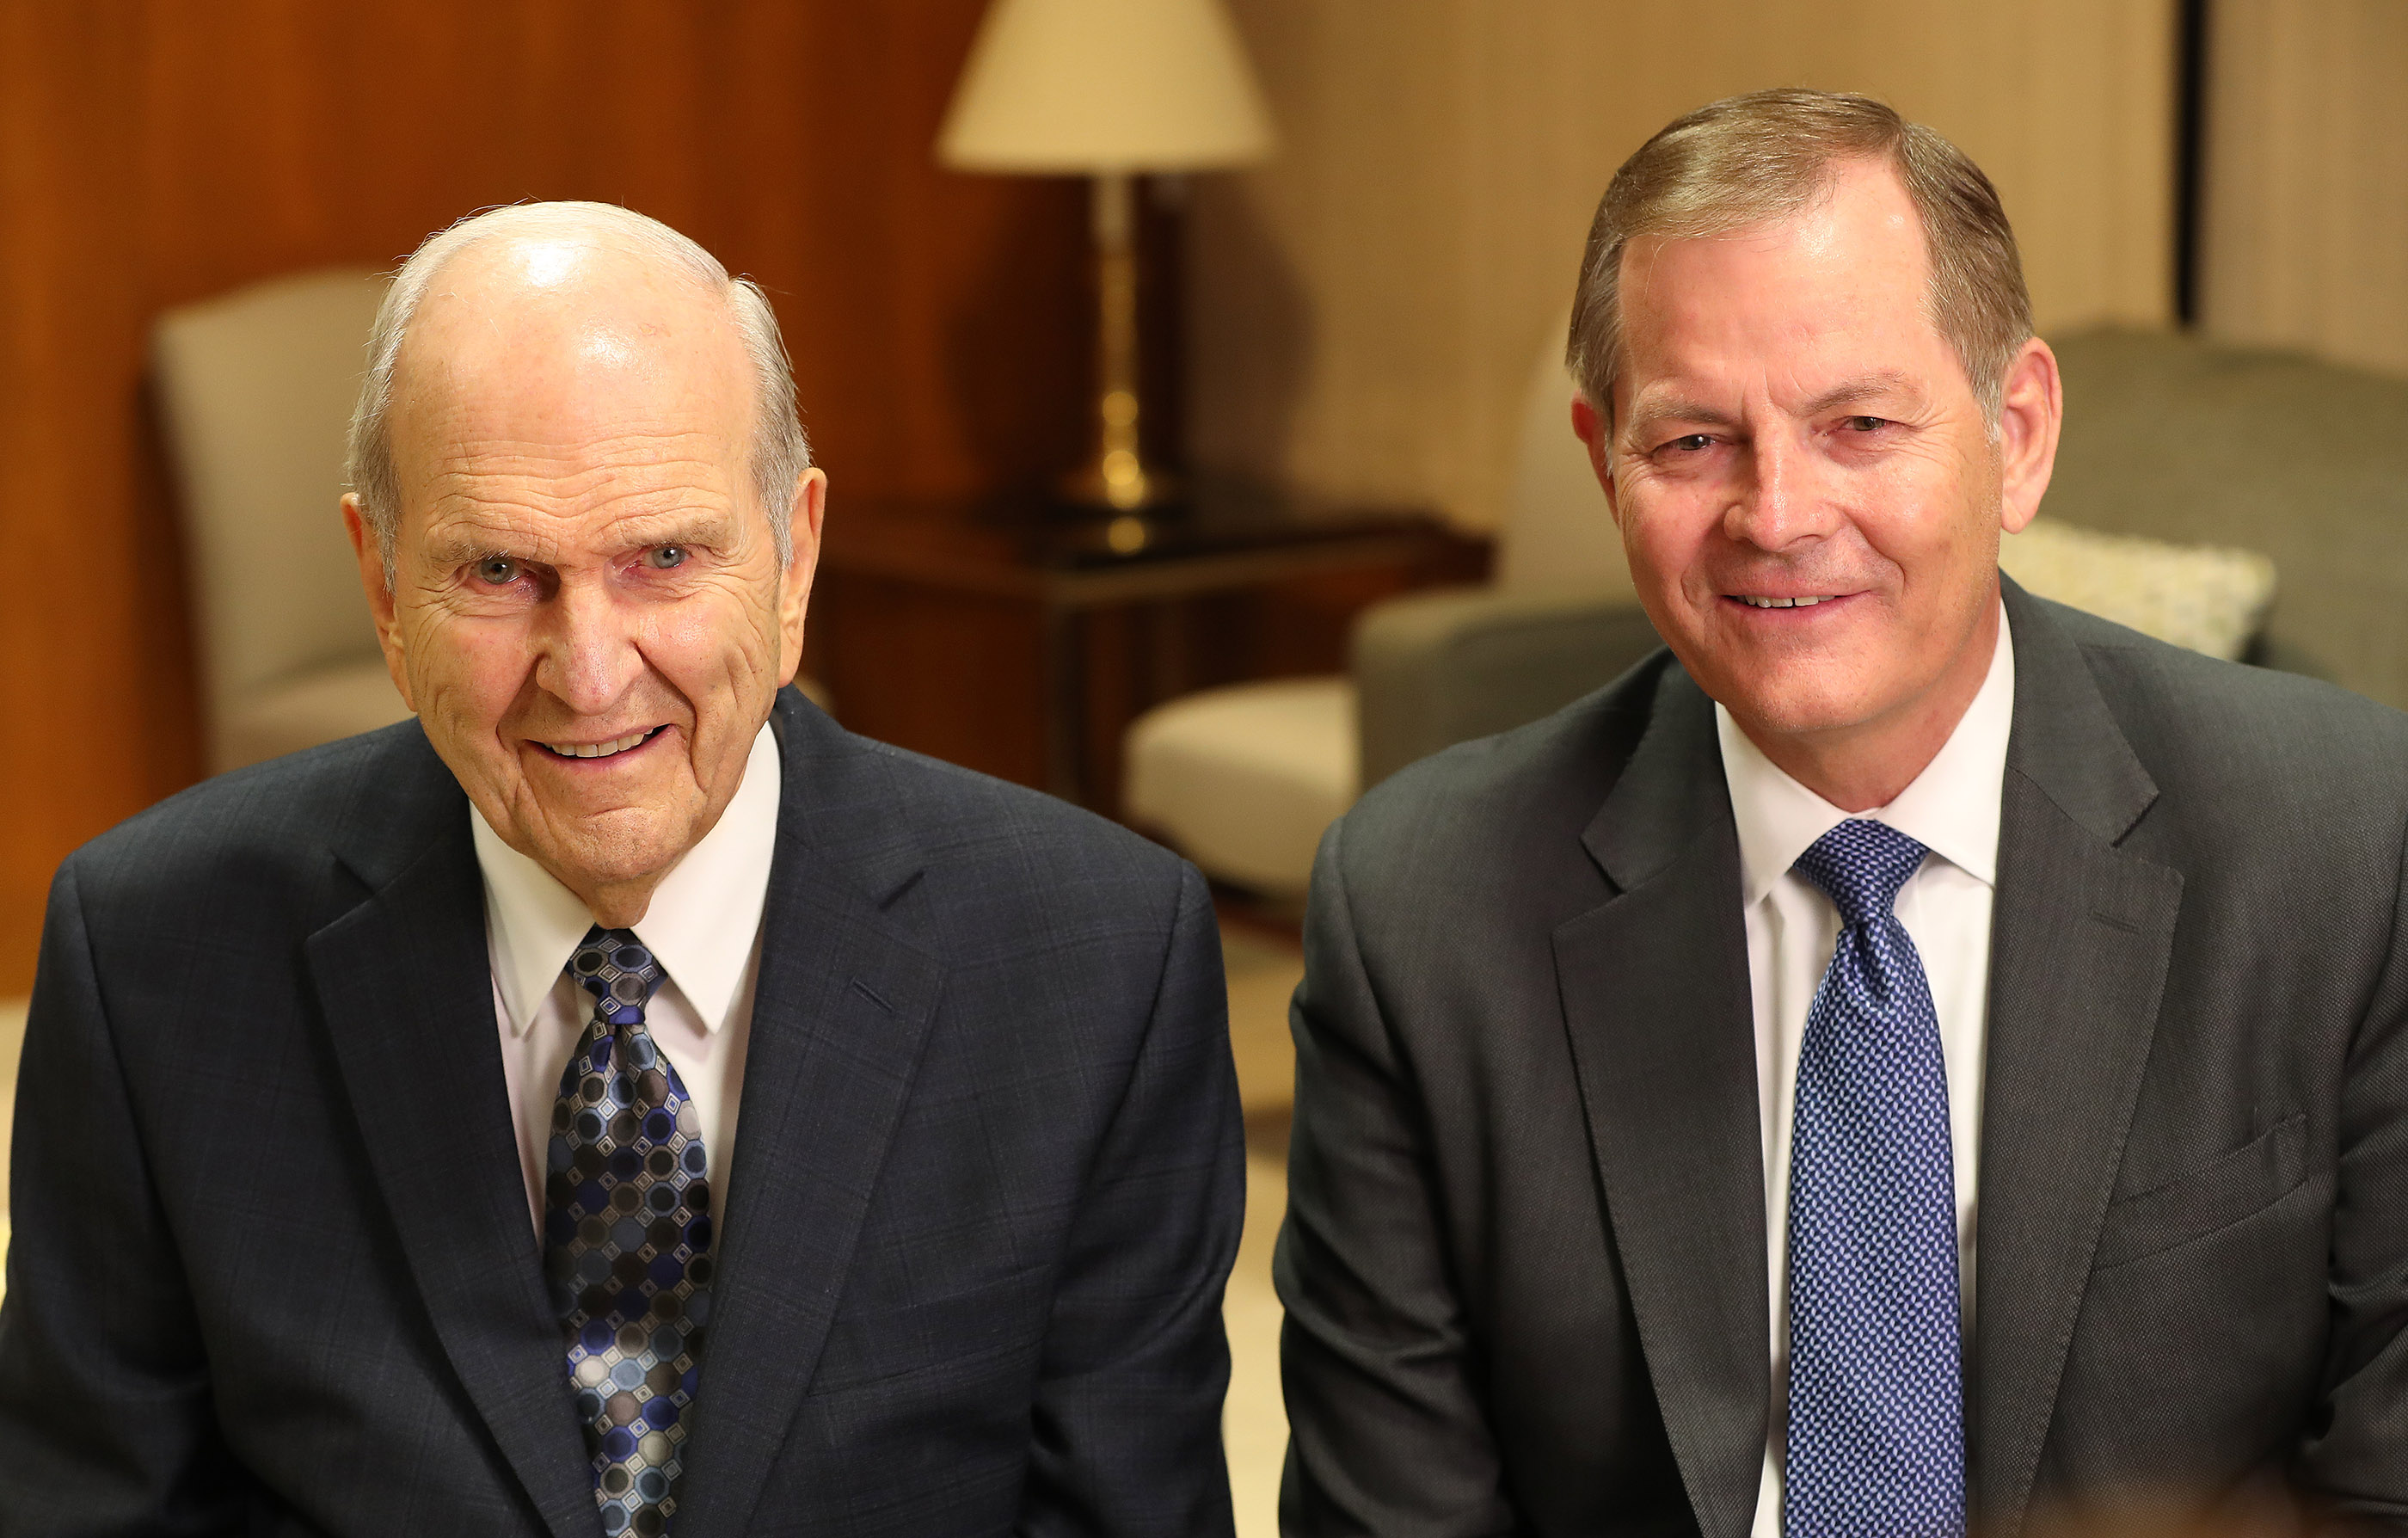 President Russell M. Nelson of The Church of Jesus Christ of Latter-day Saints and Elder Gary E. Stevenson of the Church's Quorum of the Twelve Apostles talk to media during a press conference in Asuncion, Paraguay, on Monday, Oct. 22, 2018.